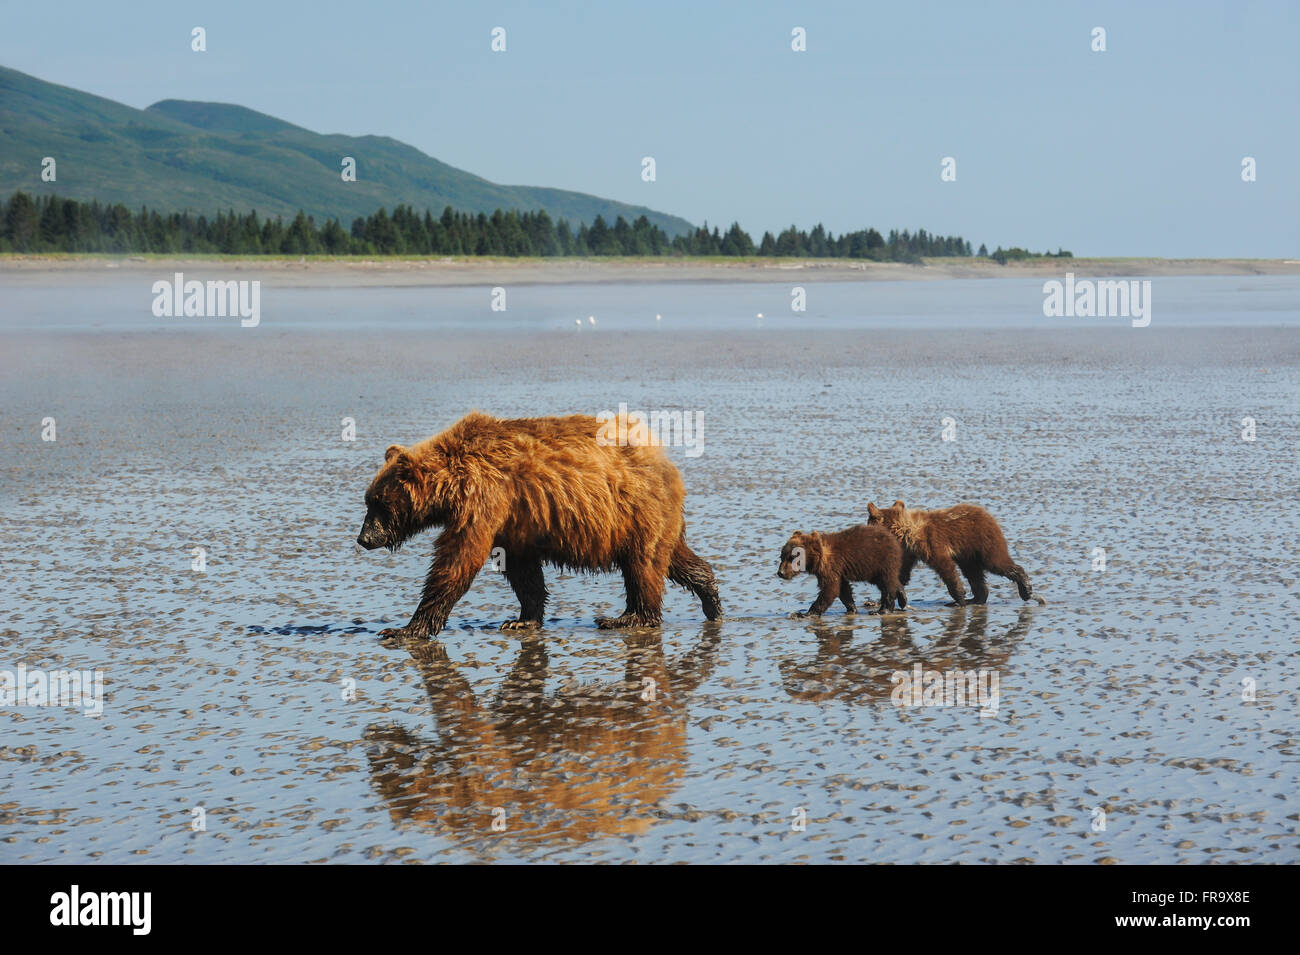 A brown bear sow and her cubs wander across the mudflats at low tide in search of clams, Lake Clark National Park - Stock Image